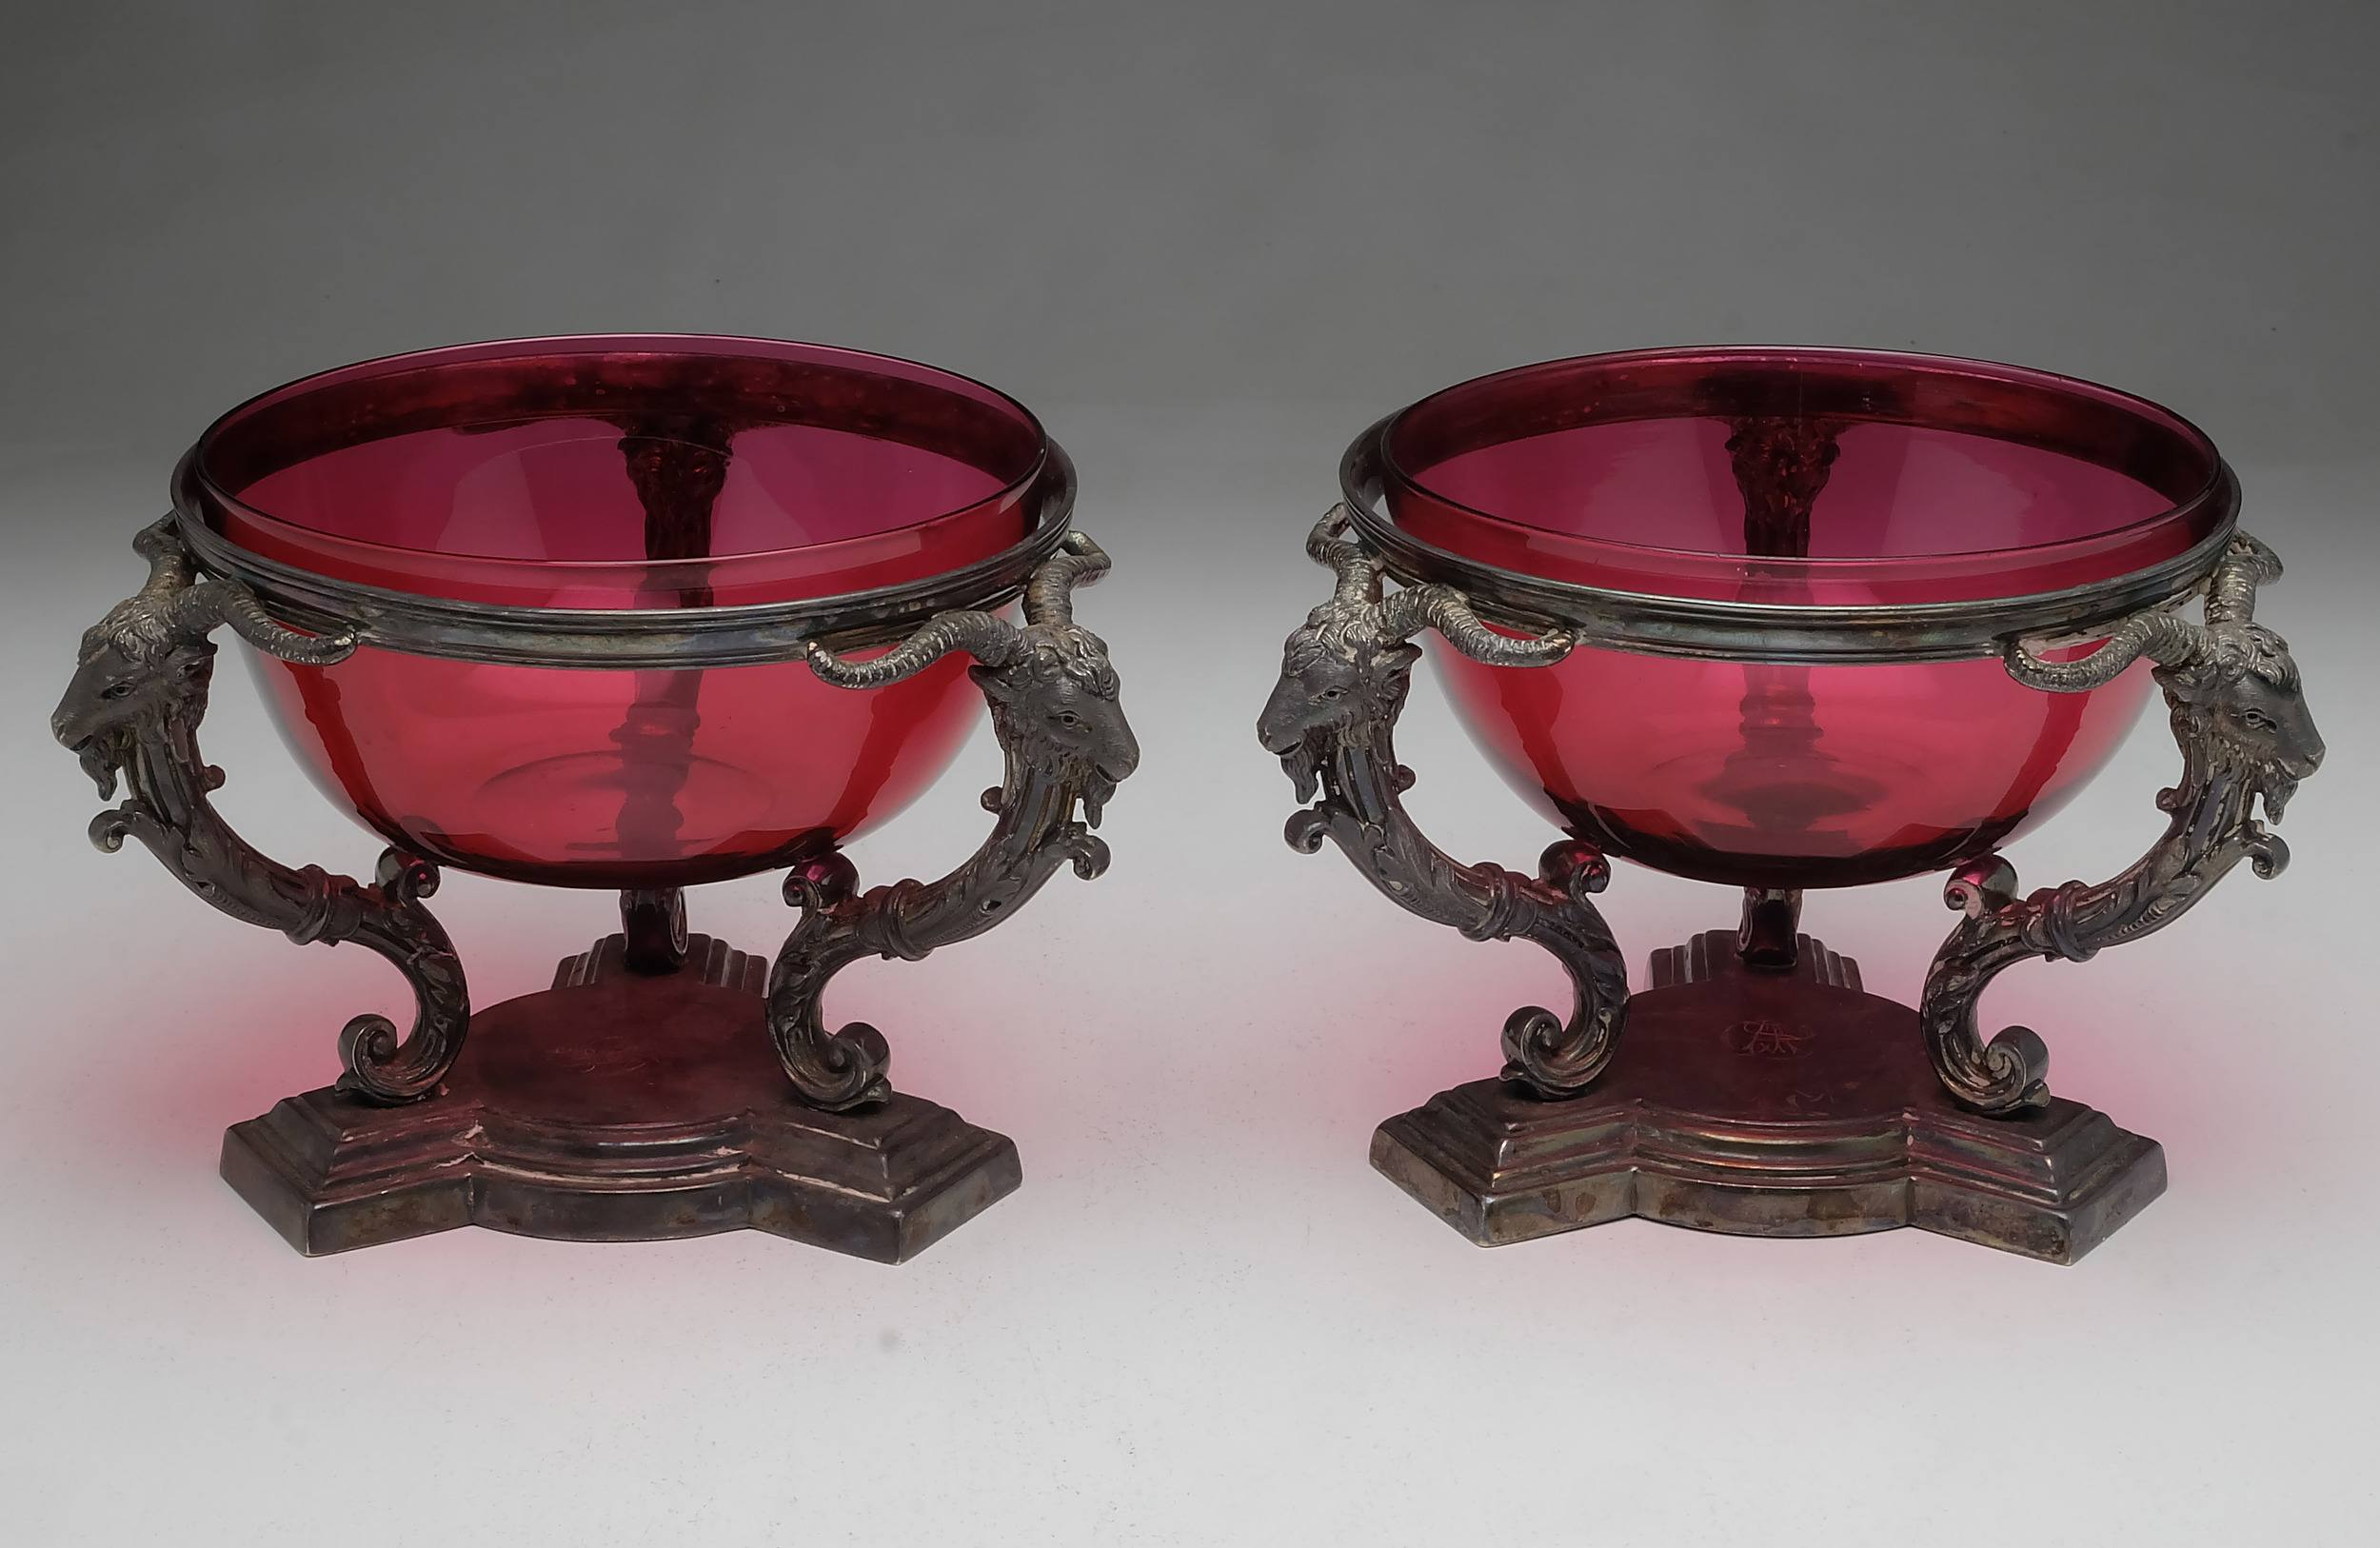 'Pair Victorian Crested and Monogrammed Electroplated and Ruby Glass Bonbonnieres With Ram Form Supports'